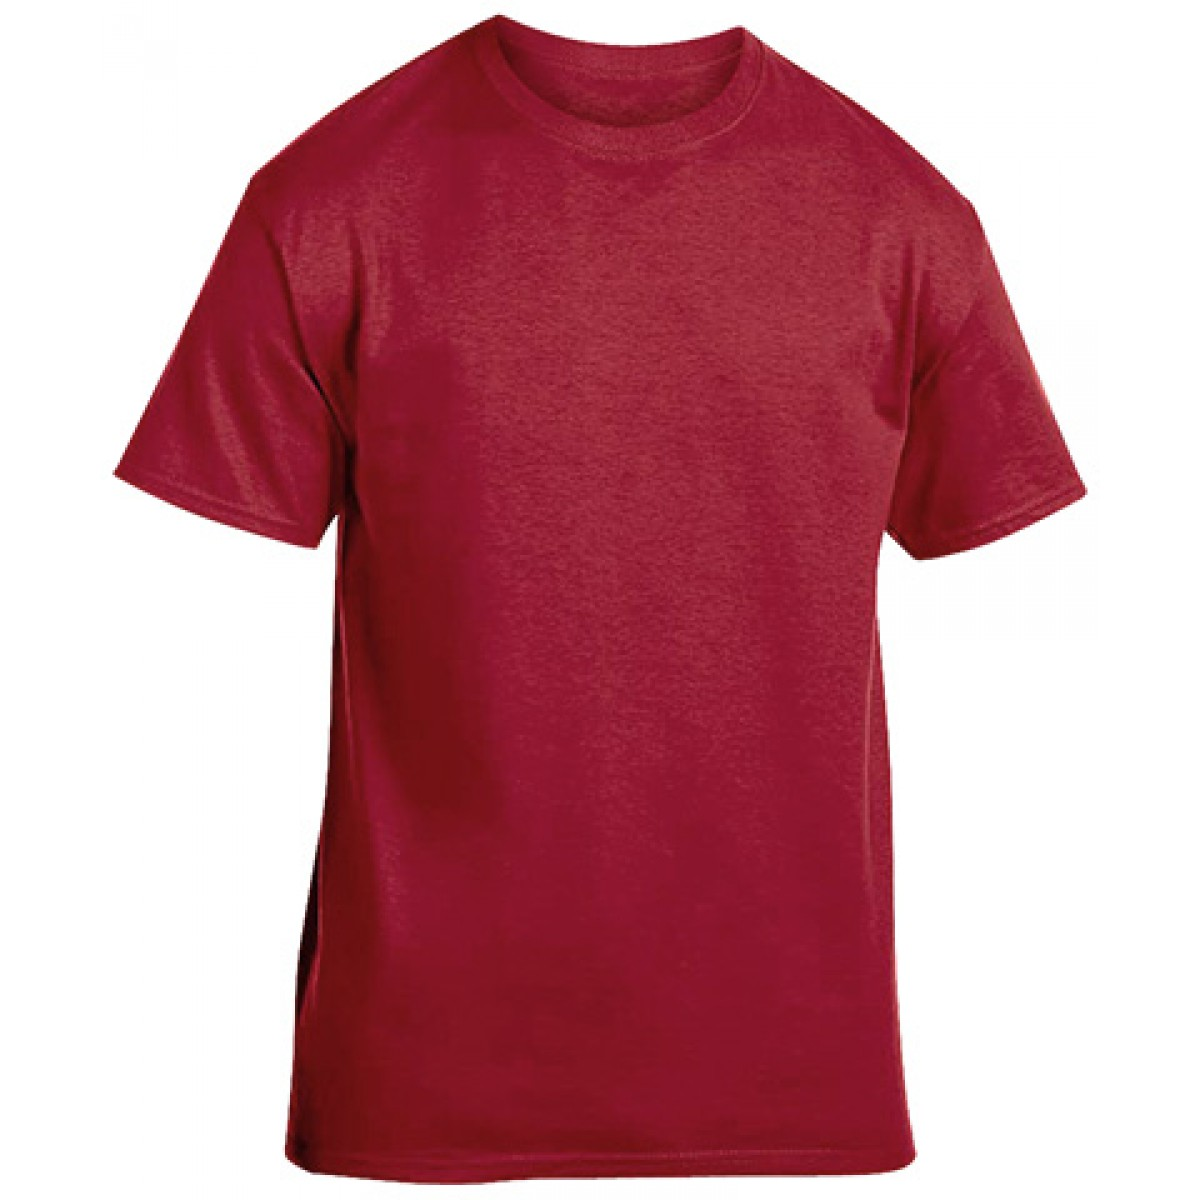 Heavy Cotton Activewear T-Shirt-Red-YL